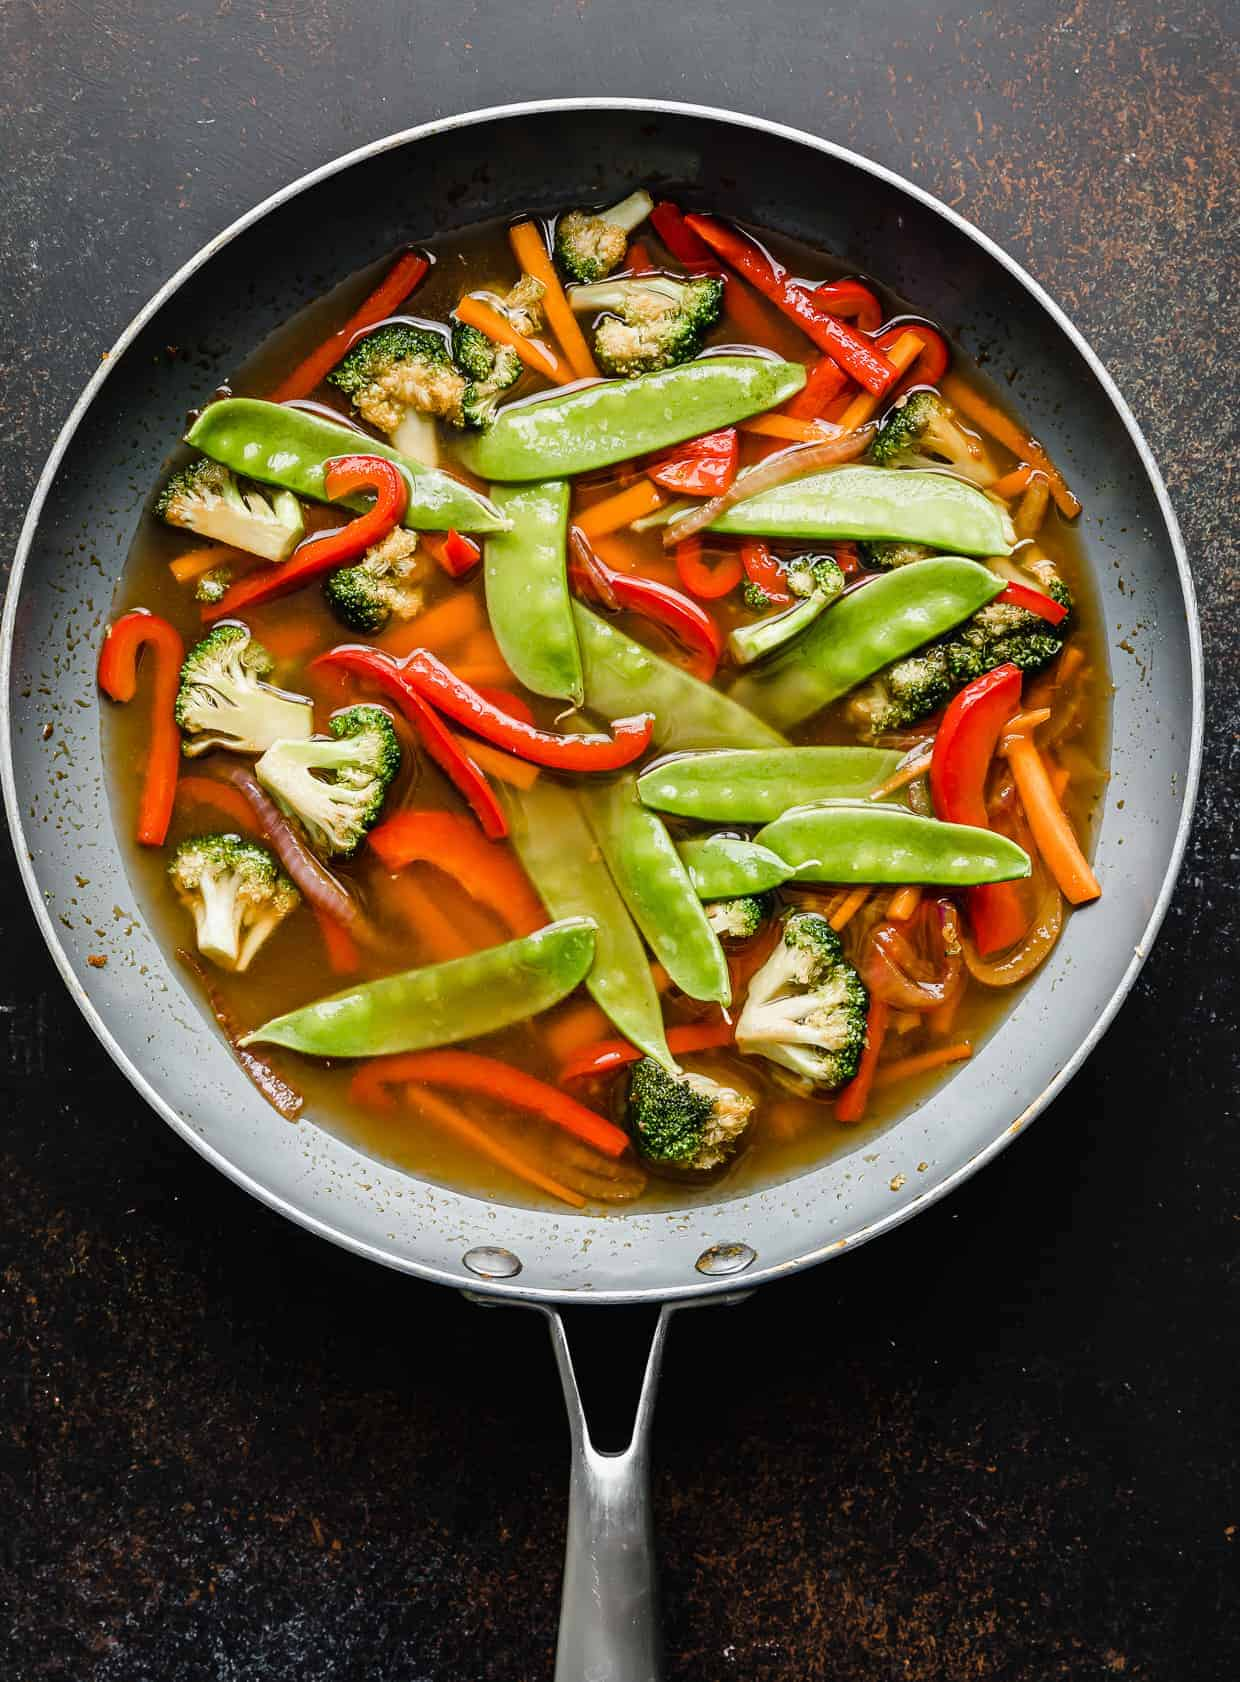 Snow peas and water added to a skillet with vegetables.